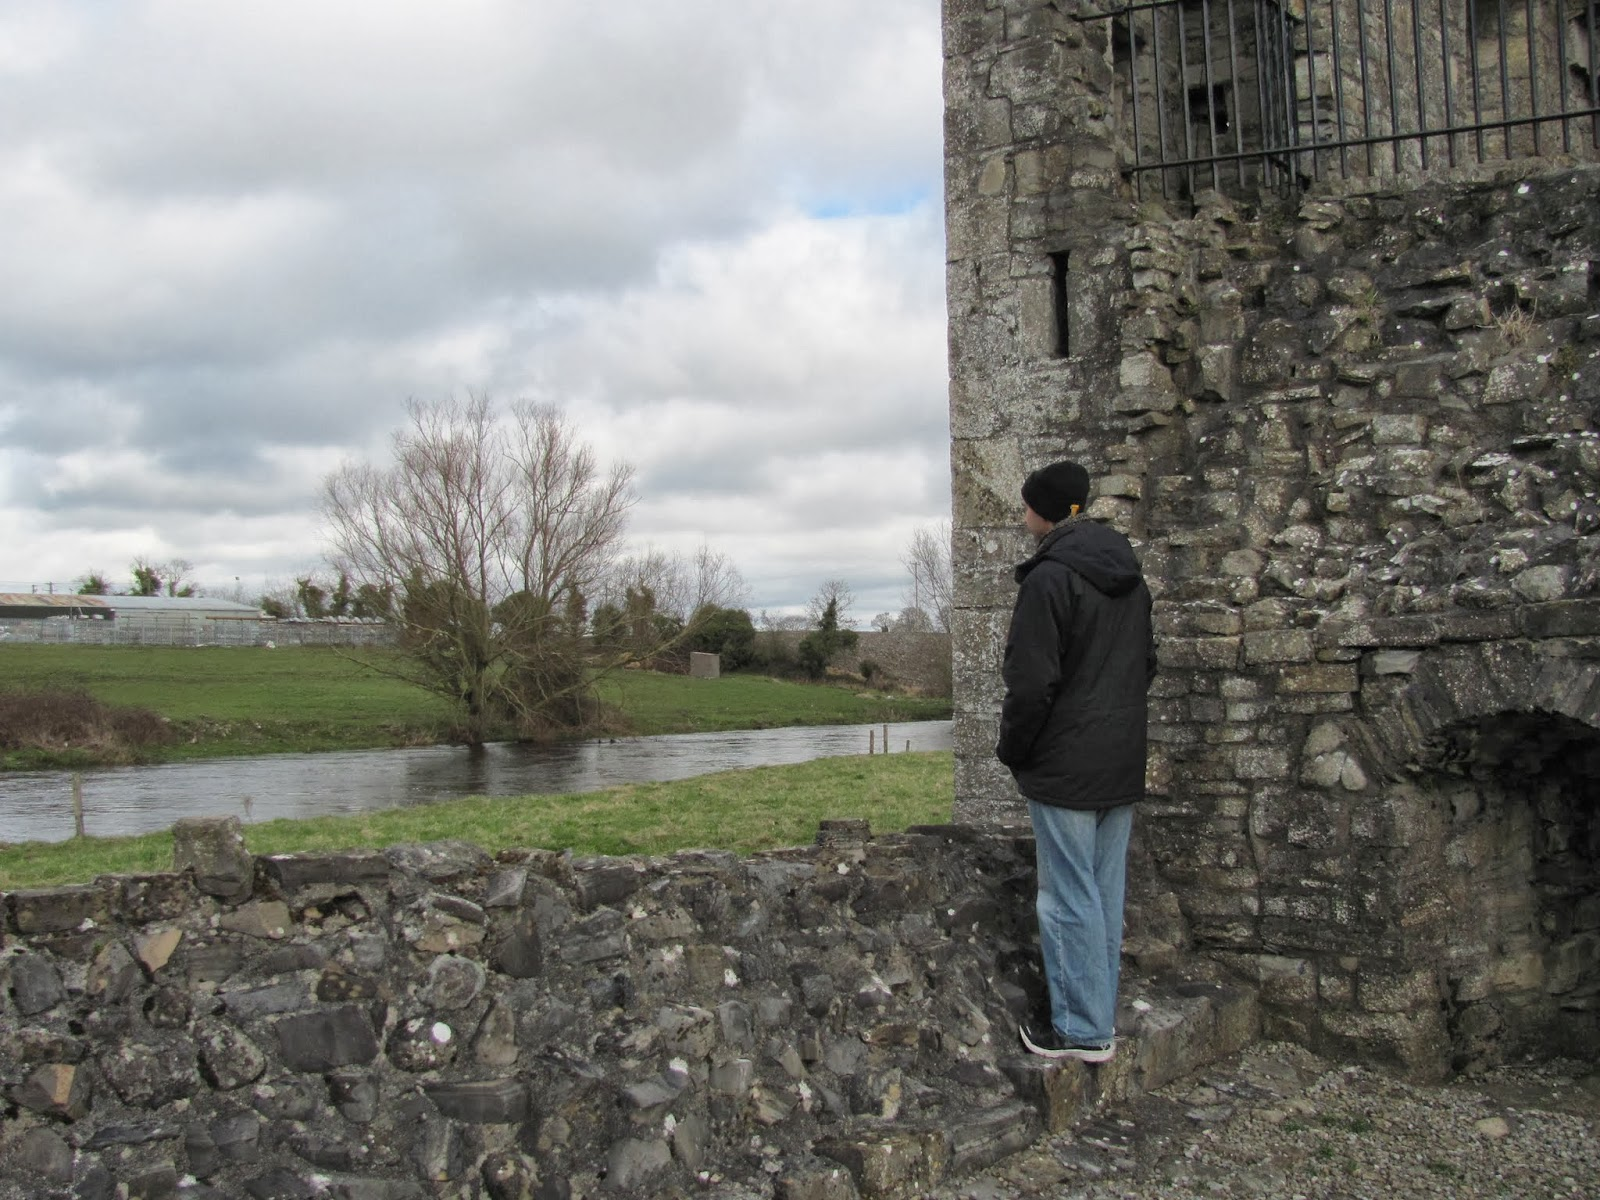 Cory looks at the River Boyne at the Hospital of St. John the Baptist in Trim, Ireland